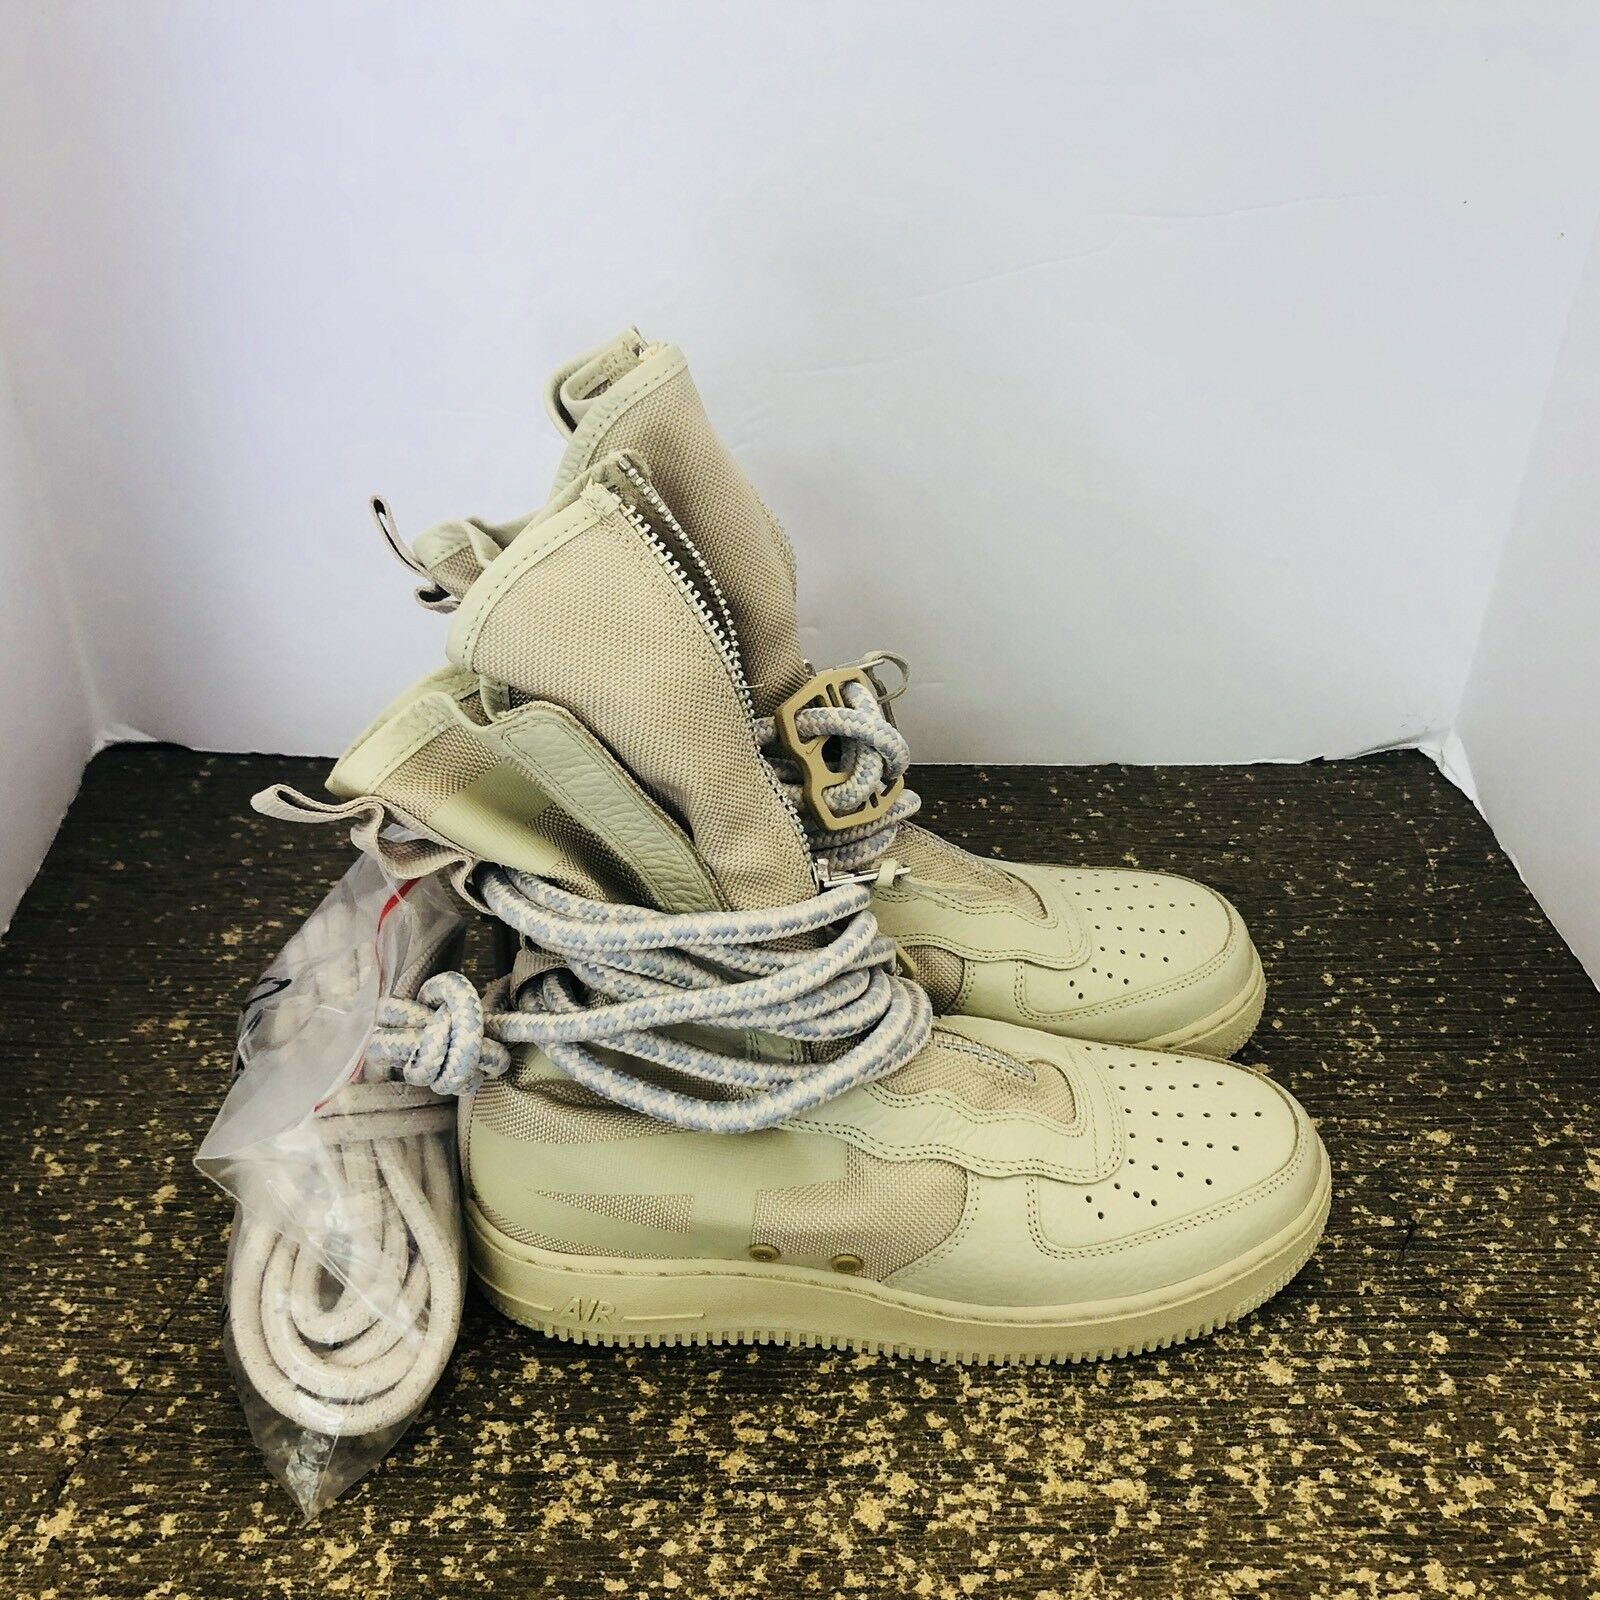 Women's Nike Special Field Air Force 1 HI Shoes -Size 10 -AA3965 200 <New>